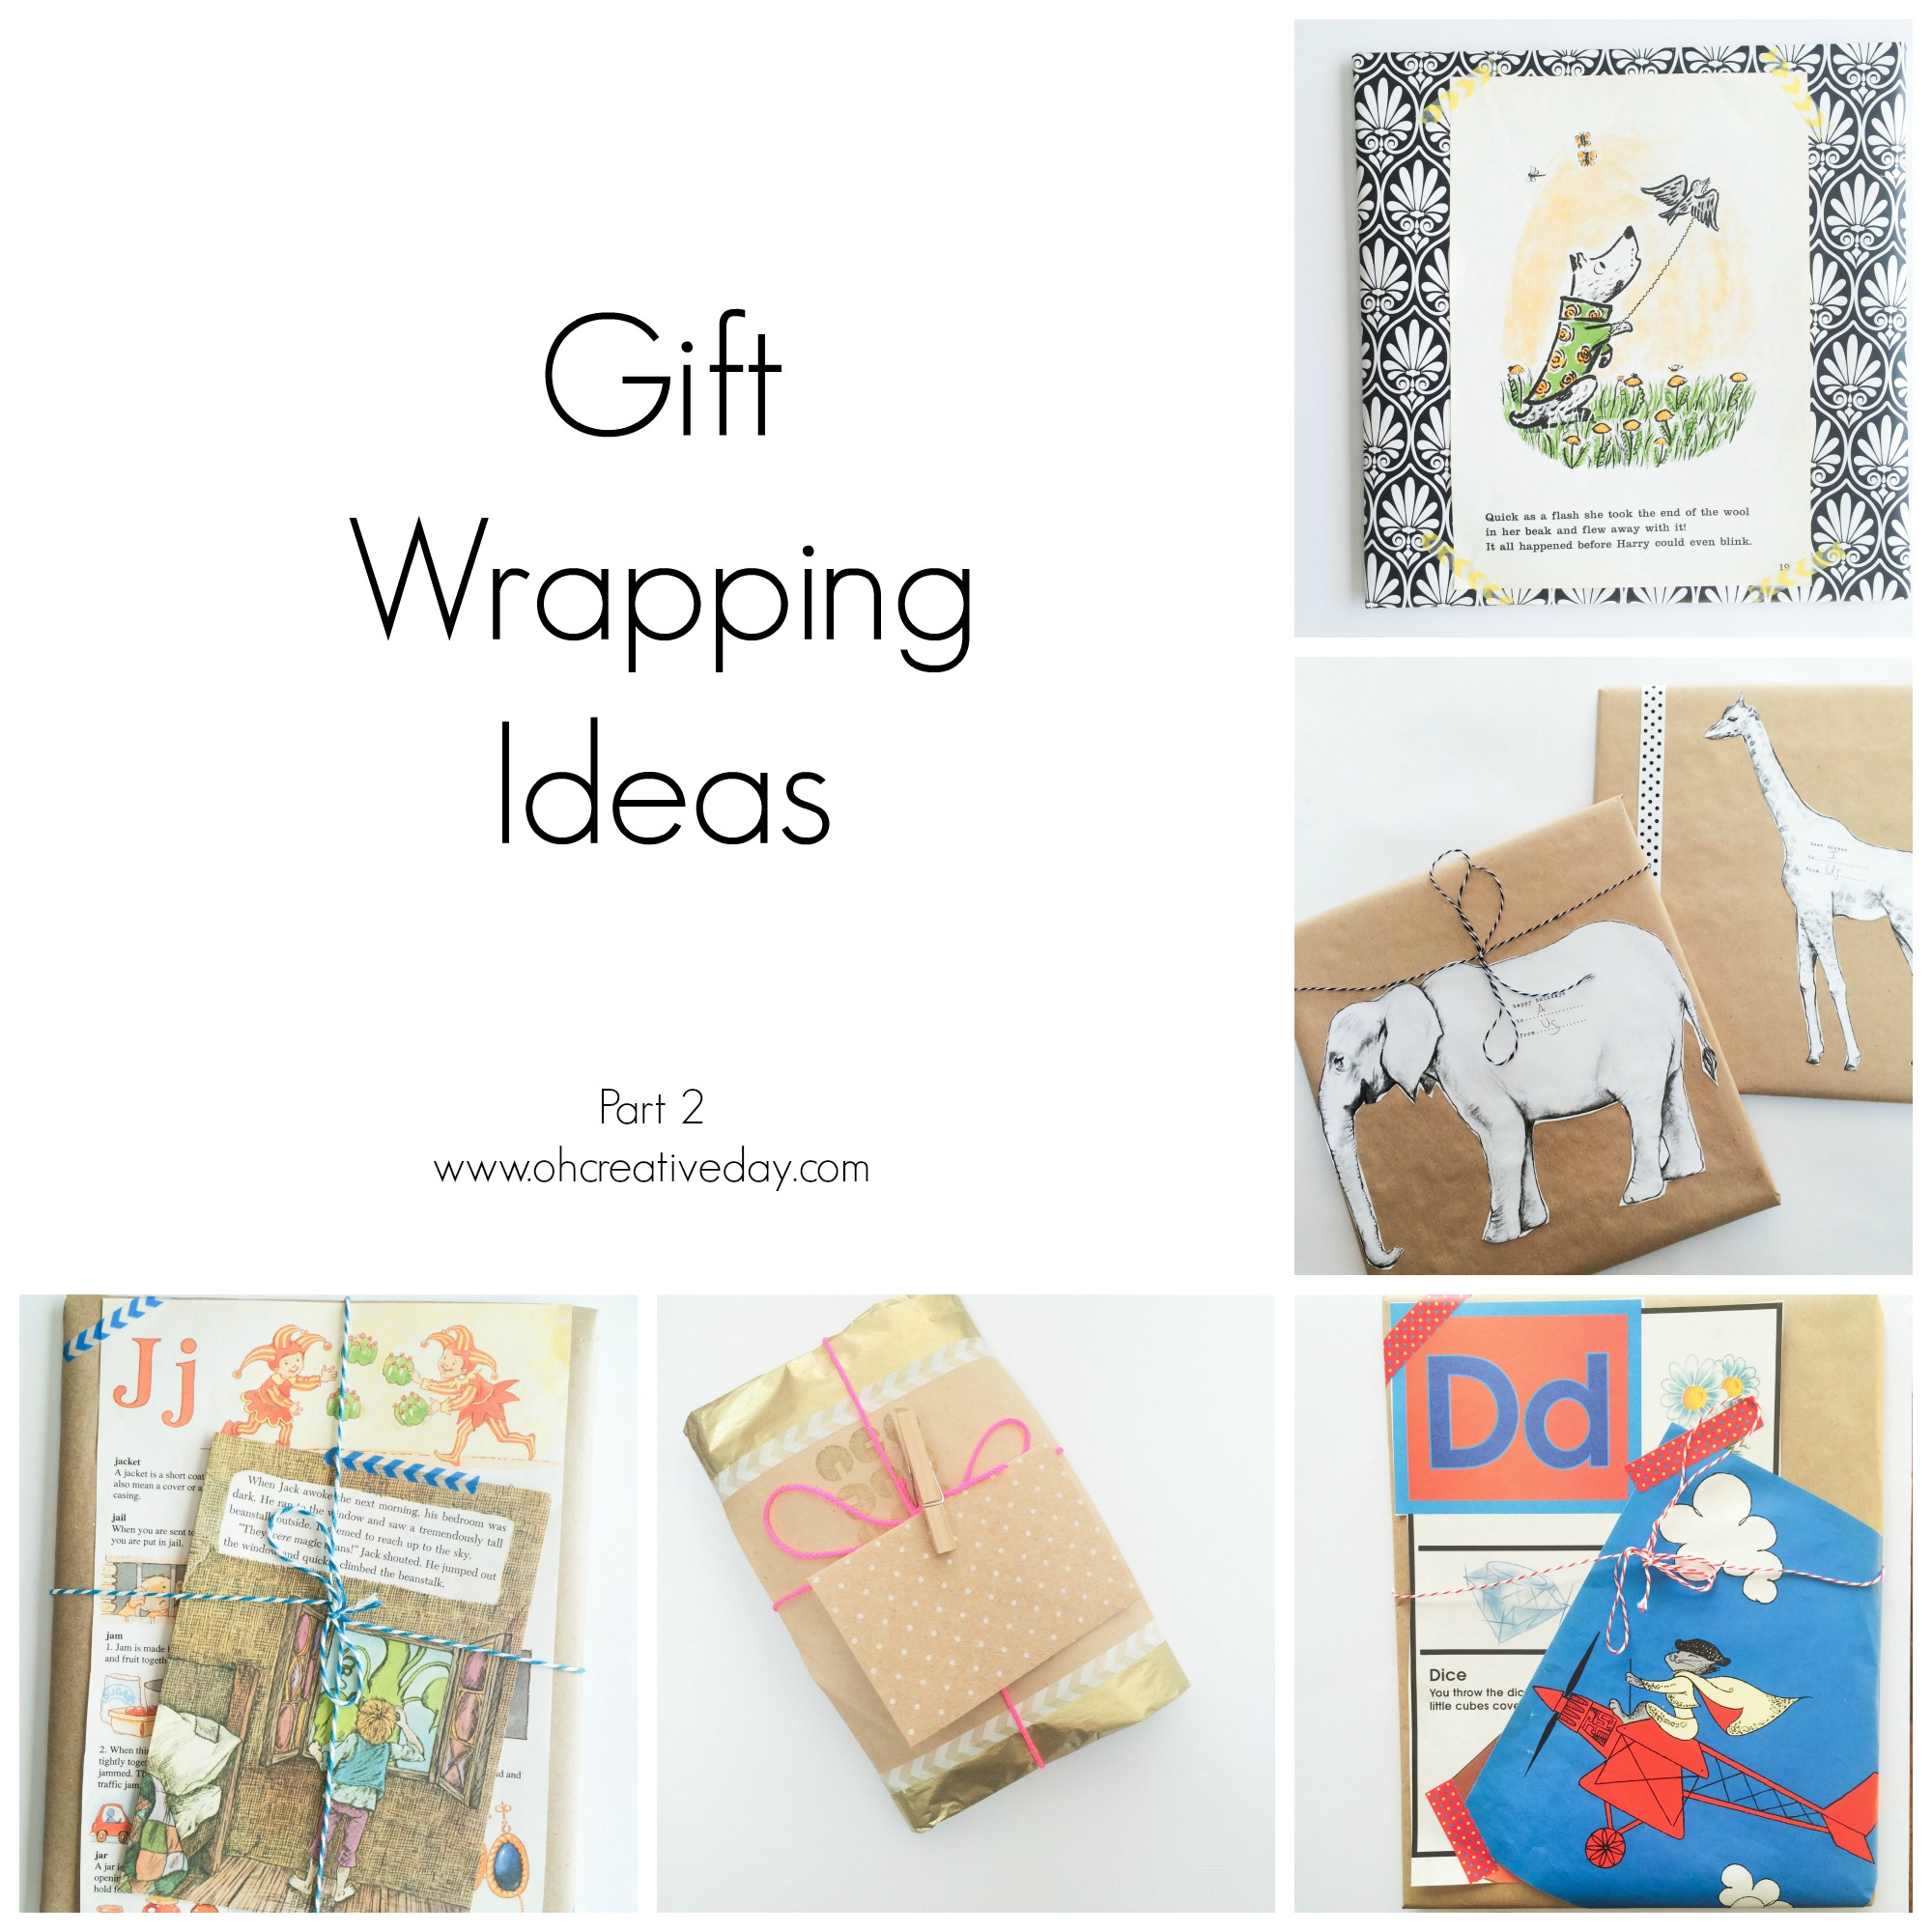 Gift_Wrapping_Ideas_Part_2